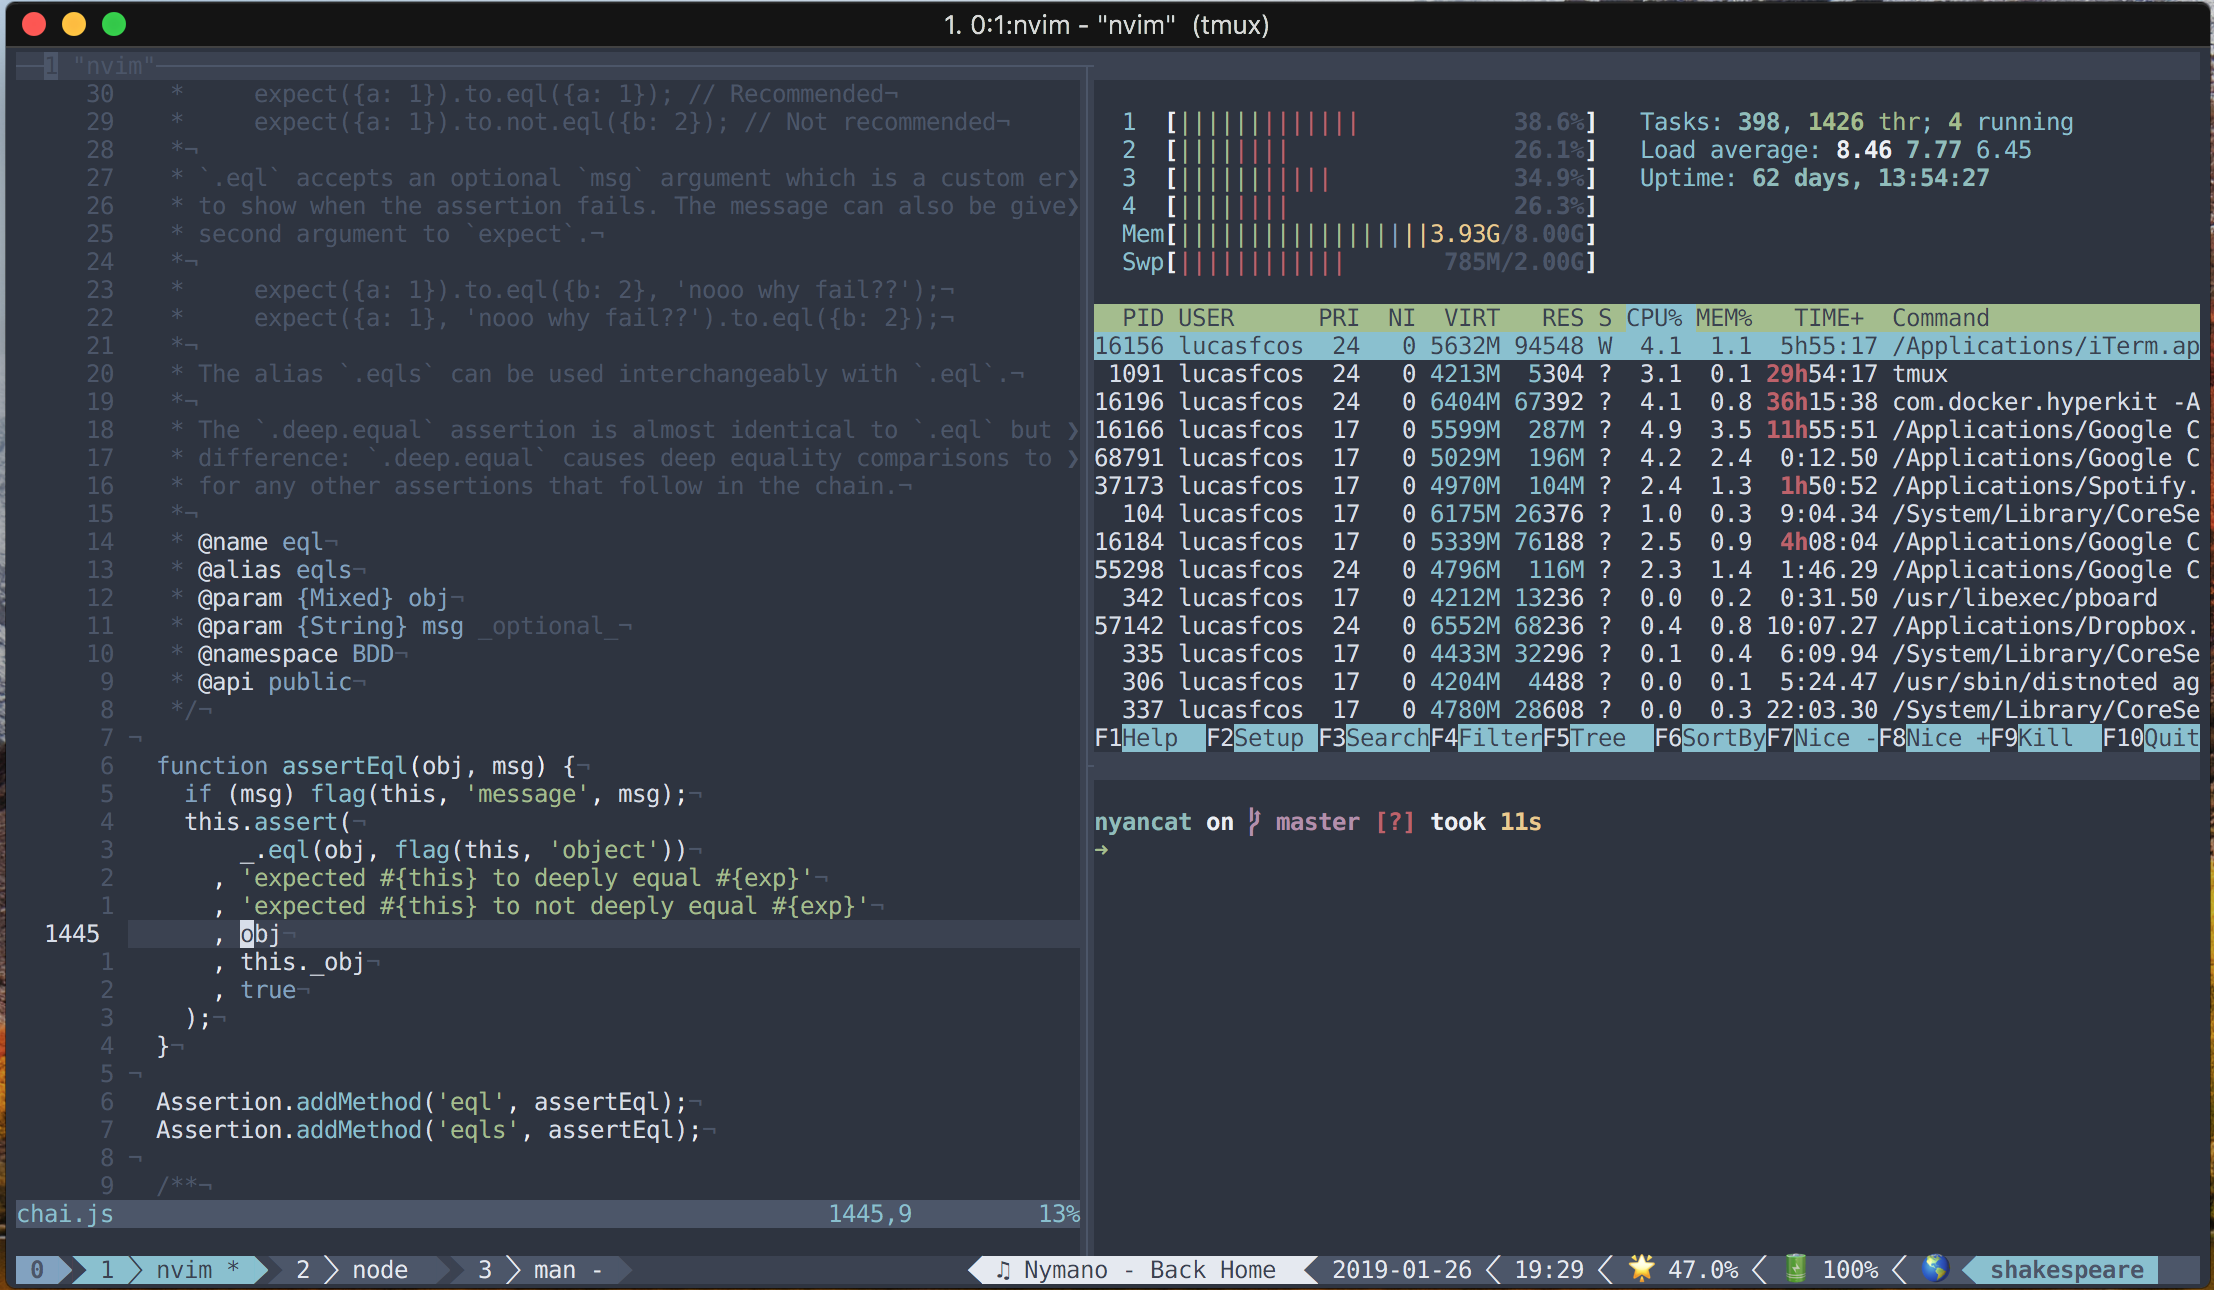 An image from my terminal showing three panes. My text editor (`vim`), htop and a blank pane.